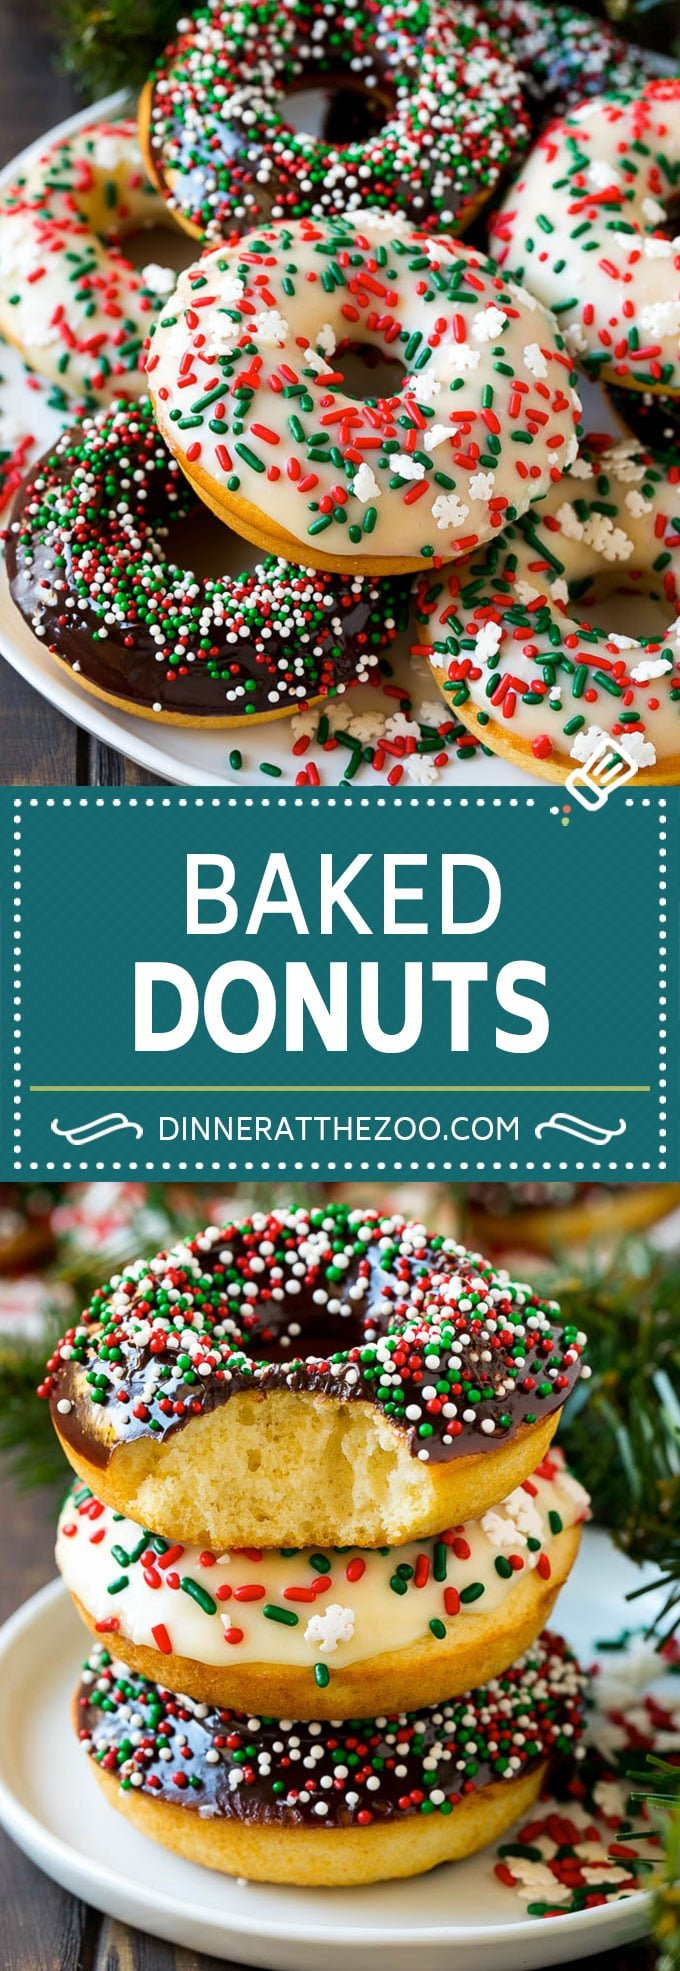 Baked Donuts Recipe | Cake Donuts | Chocolate Donuts | Sprinkle Donuts #donuts #chocolate #sprinkles #breakfast #brunch #dinneratthezoo